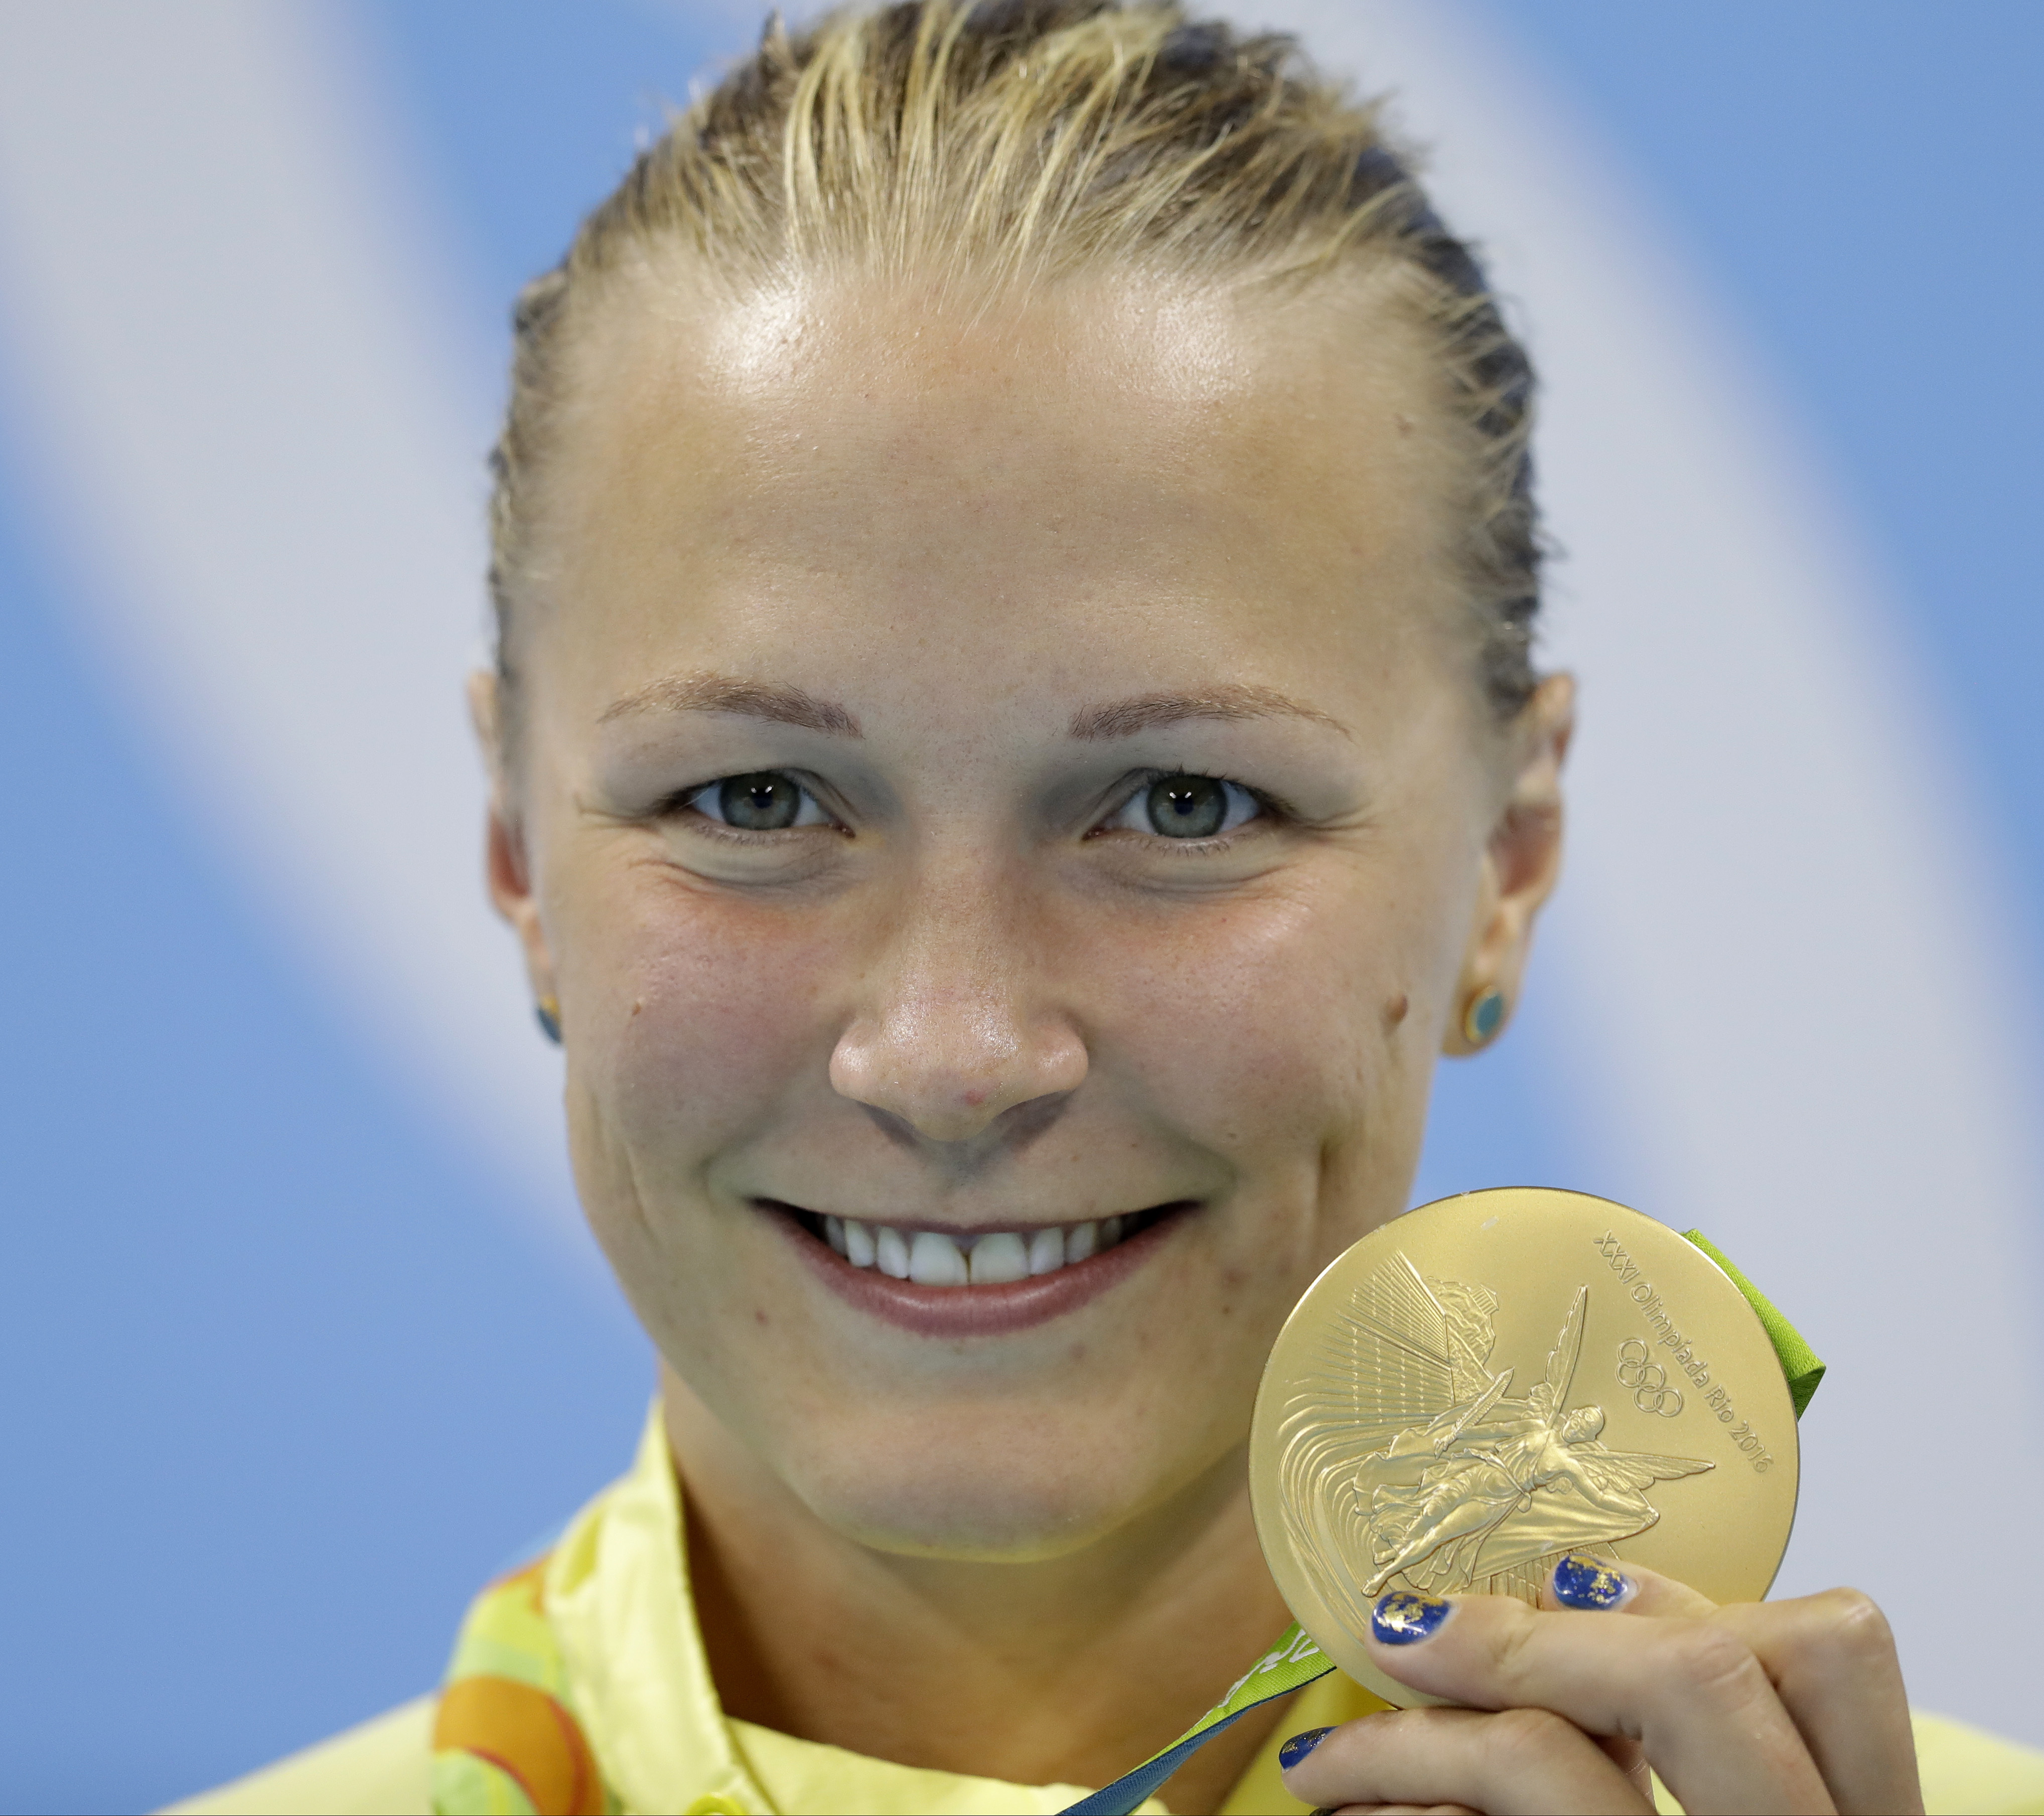 Sweden's Sarah Sjostrom shows off her gold medal, after setting a new world record, during the medal ceremony for the women's 100-meter butterfly final during the swimming competitions at the 2016 Summer Olympics, Sunday, Aug. 7, 2016, in Rio de Janeiro,